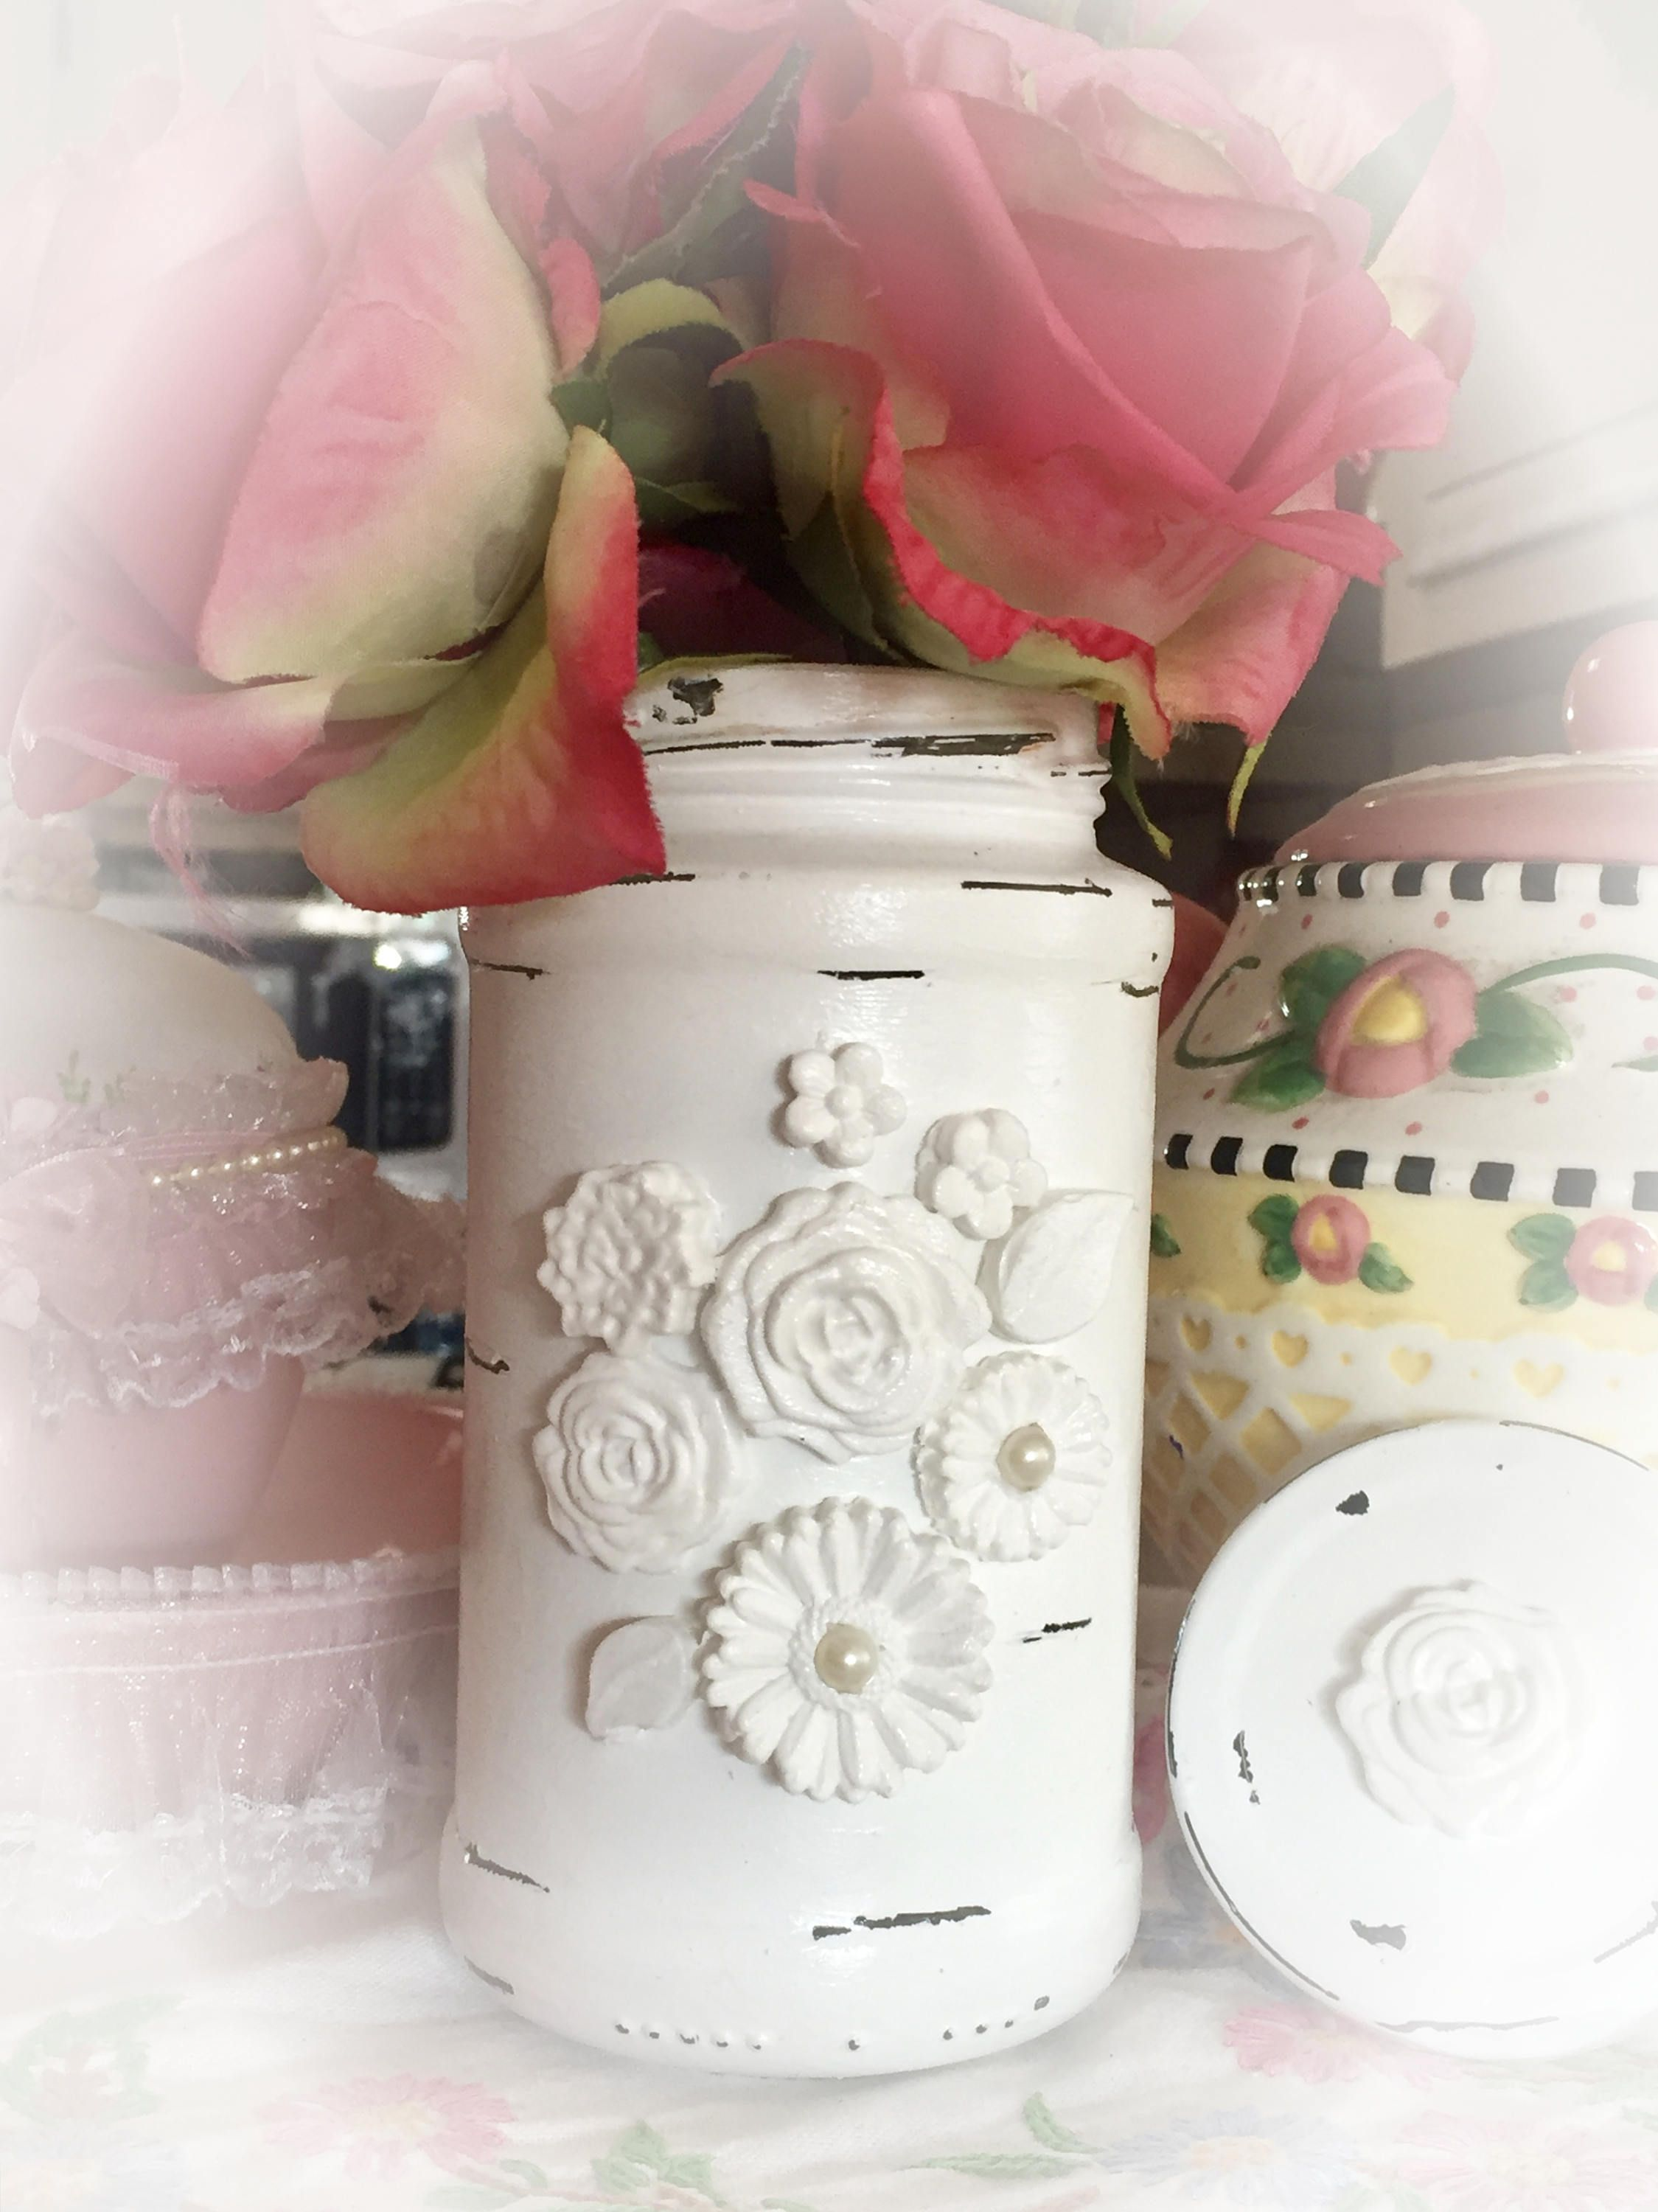 Mason jar wedding decoration ideas  Ornate Shabby Chic Glass Flower Vase Jar  Wedding Bridal Baby